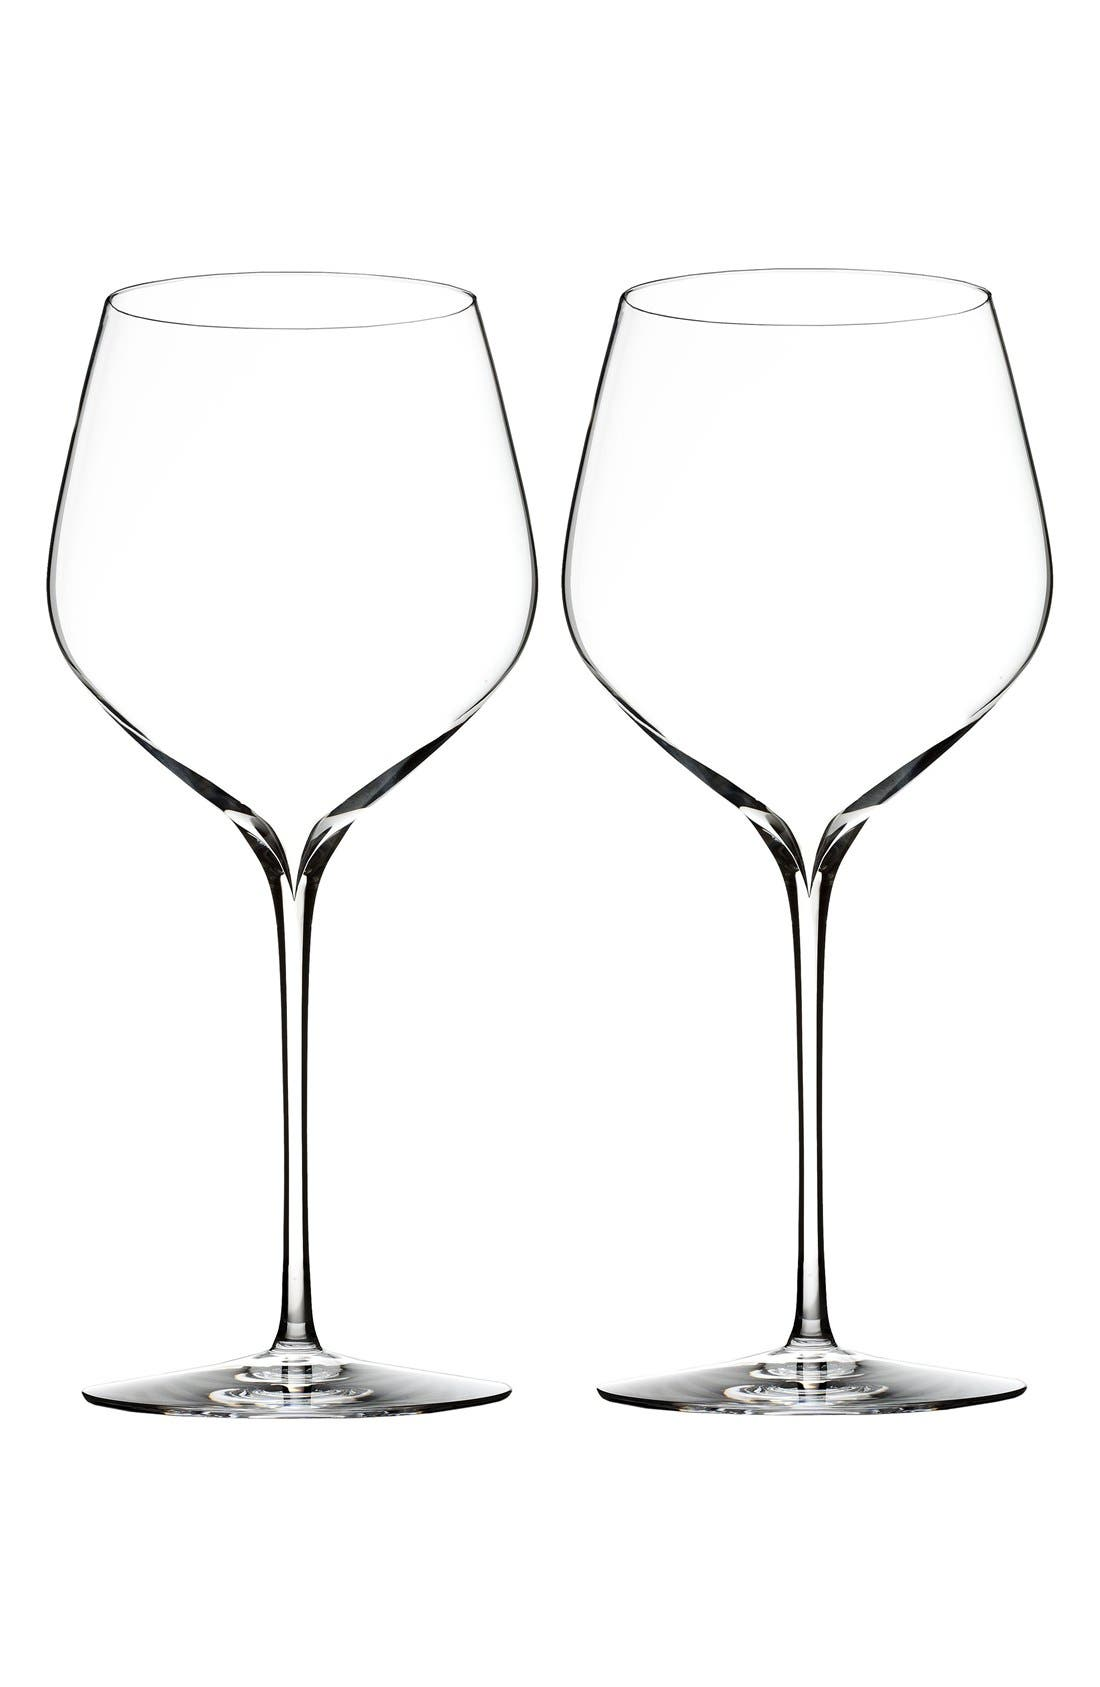 'Elegance' Fine Crystal Cabernet Sauvignon Glasses,                         Main,                         color, 100